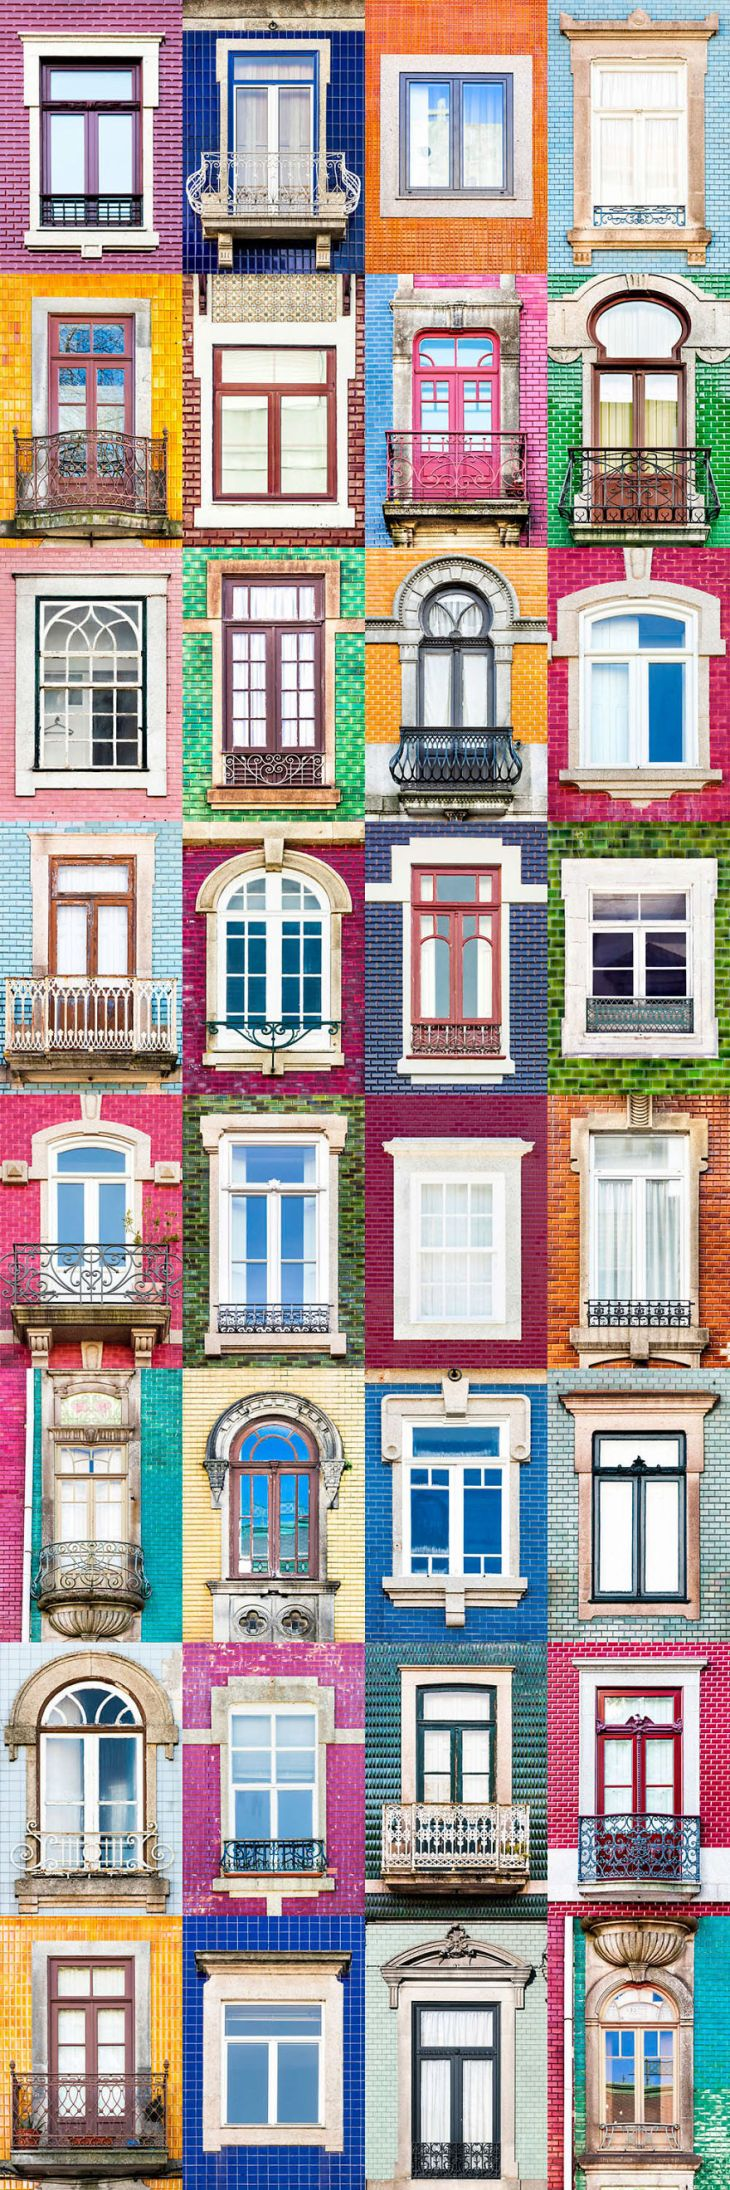 I-traveled-all-over-portugal-to-photograph-windows-more-than-3200-59edaf2e3b36d__880